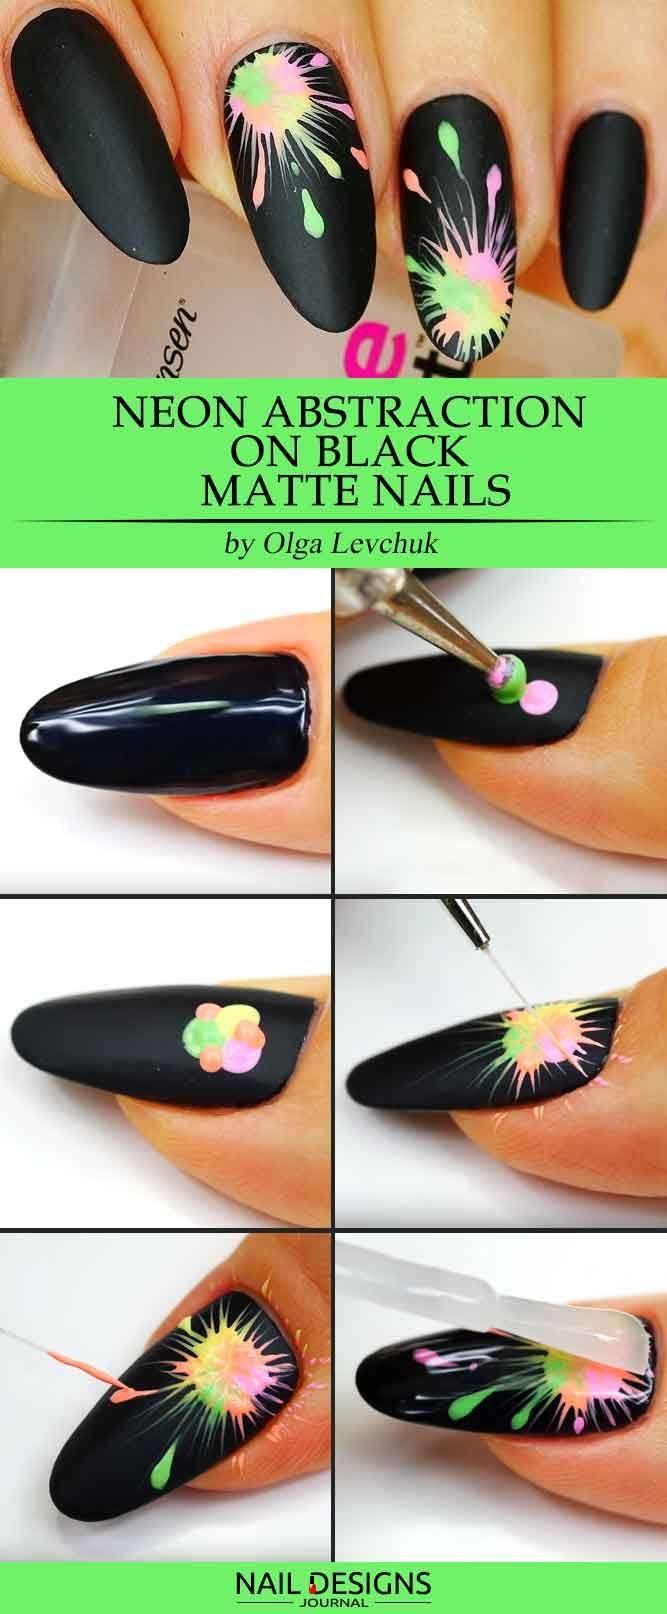 10 Easy Tutorials: Different Nail Designs Step-by-Step | Diseños de ...